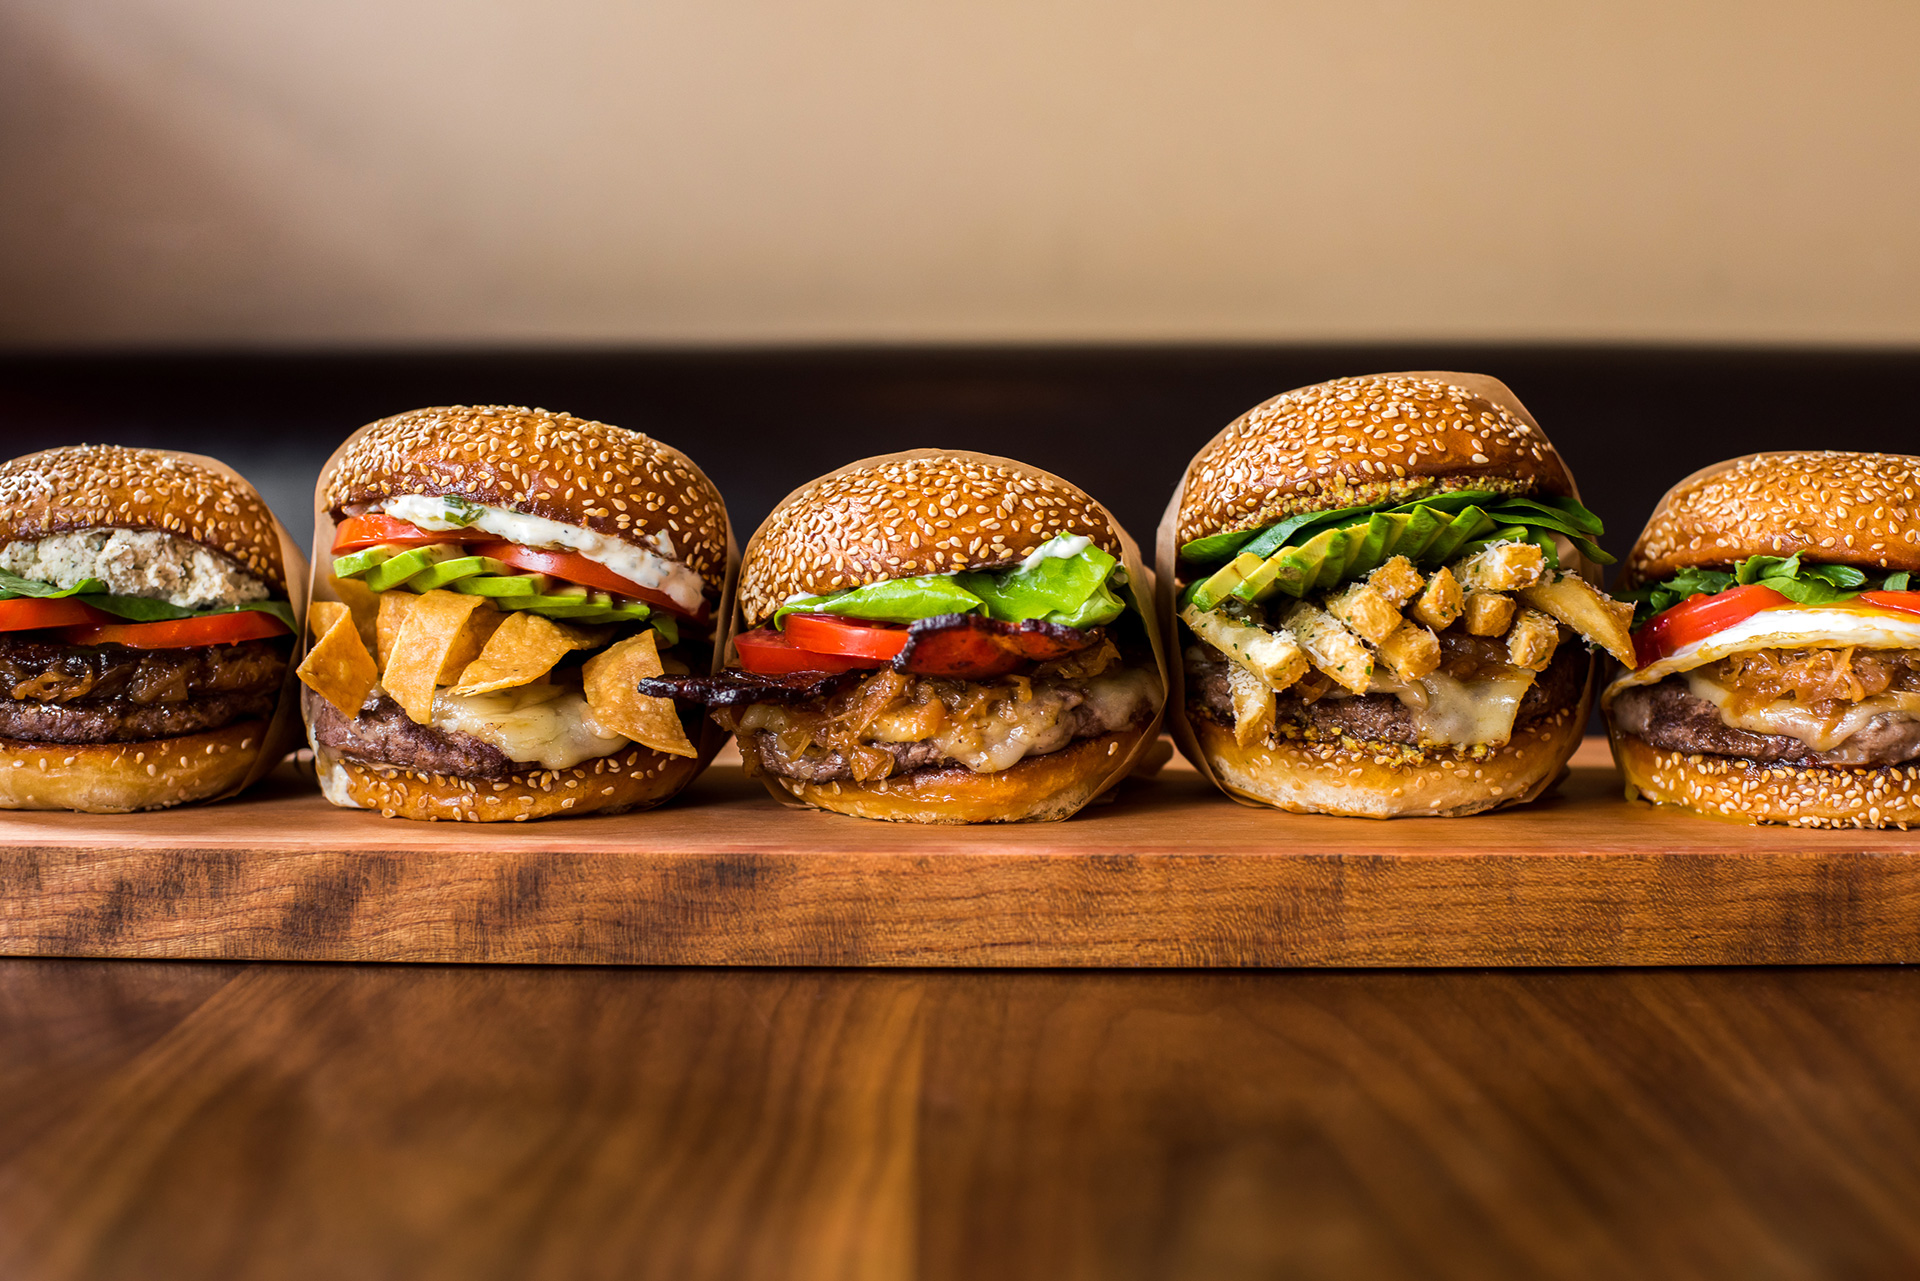 Roam Artisan Burgers is opening a location in Uptown Oakland.